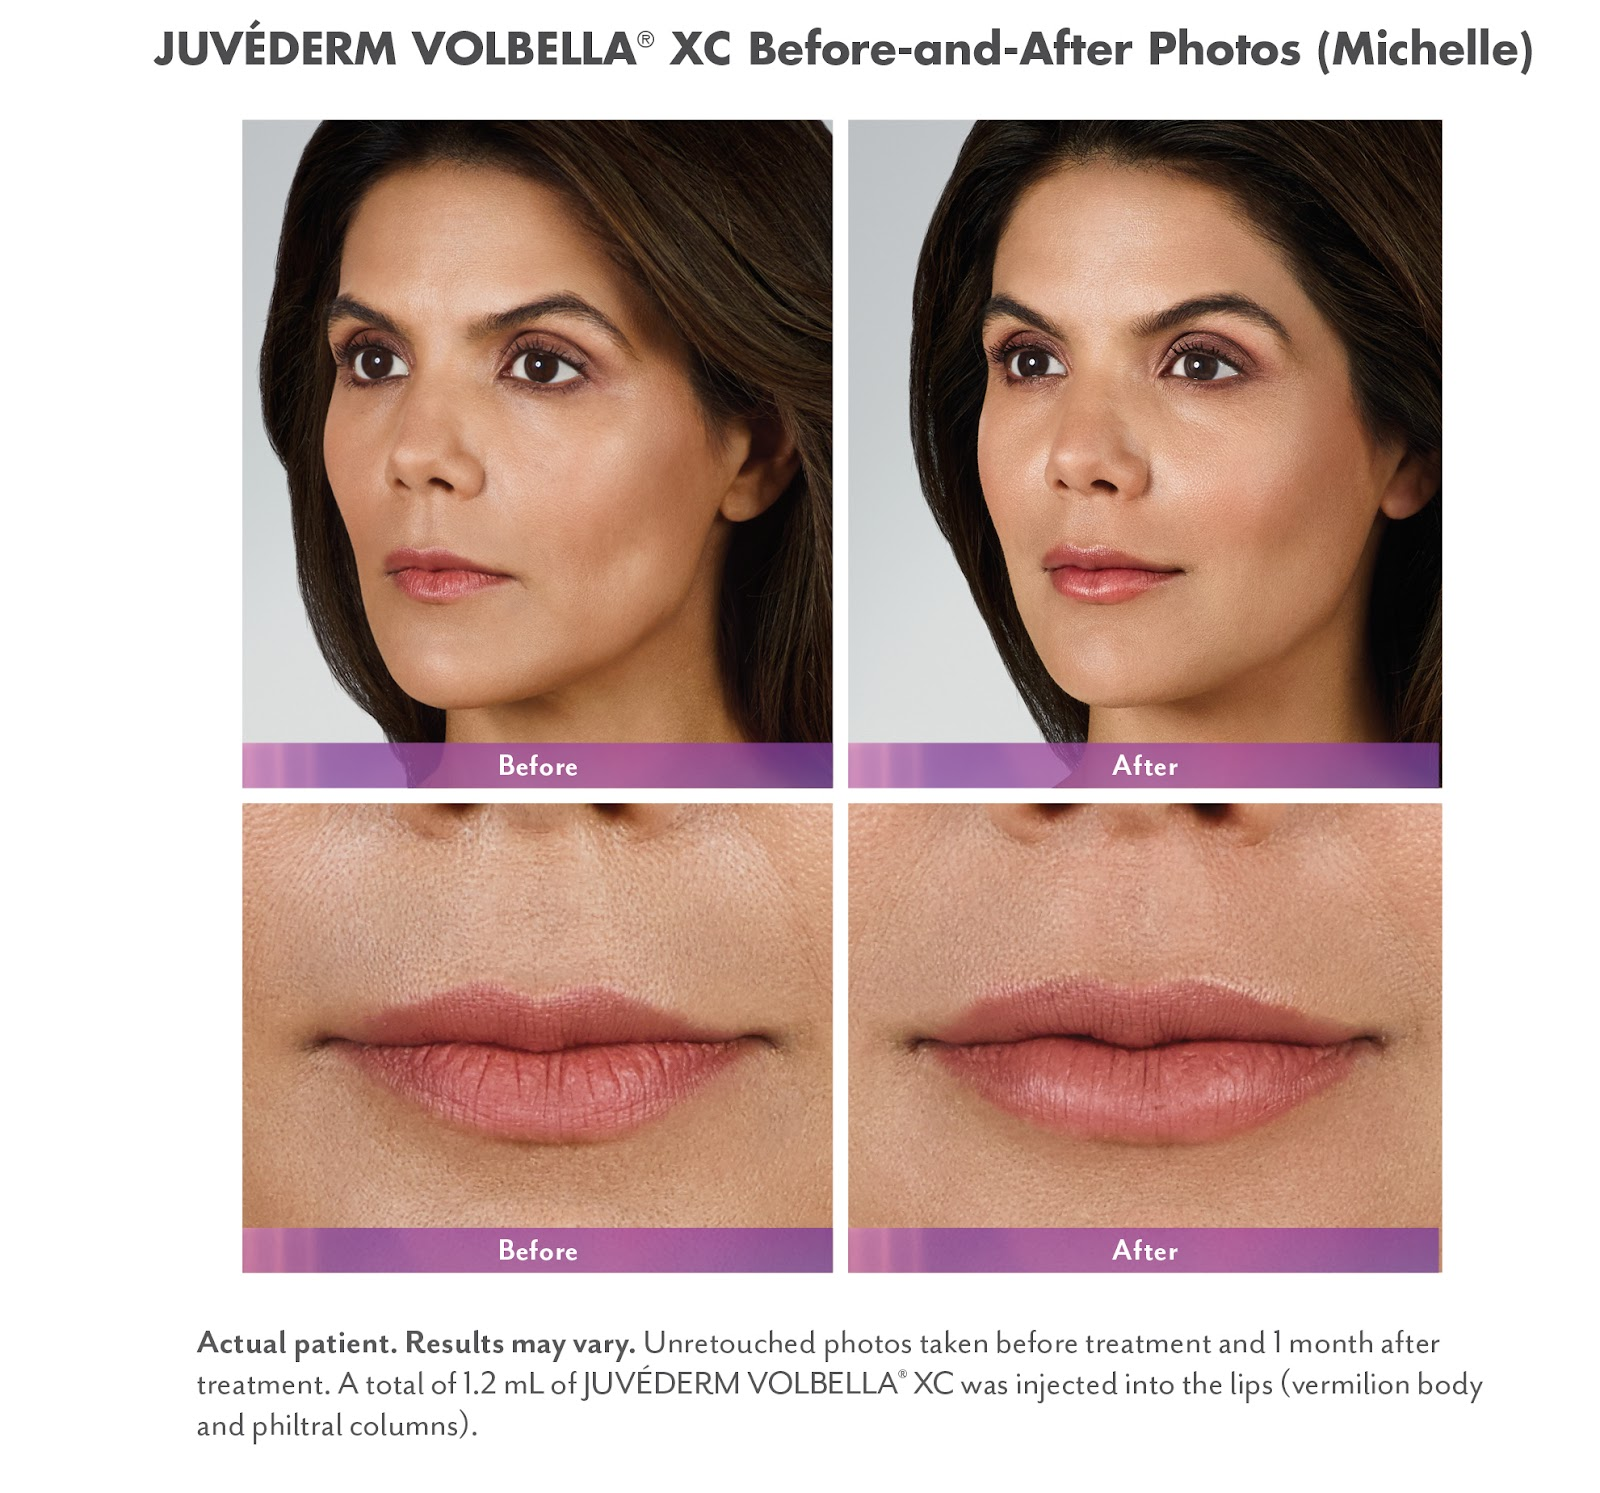 Mwah! Get Oh-So-Kissable Lips with Lip Fillers at Anderson MedSpa